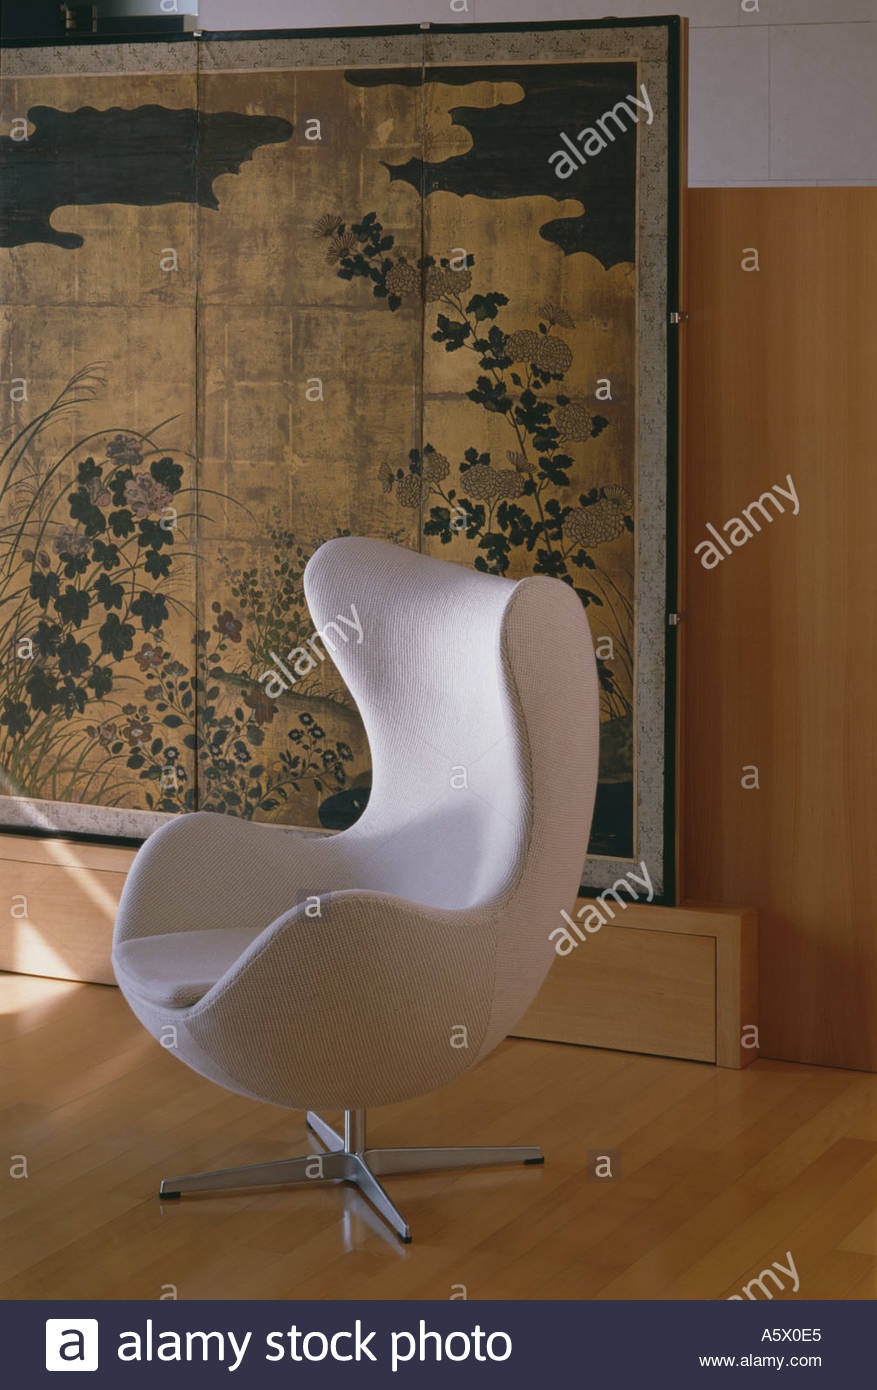 Arne Jacobsen Chair Stock Photos Arne Jacobsen Chair Stock Images